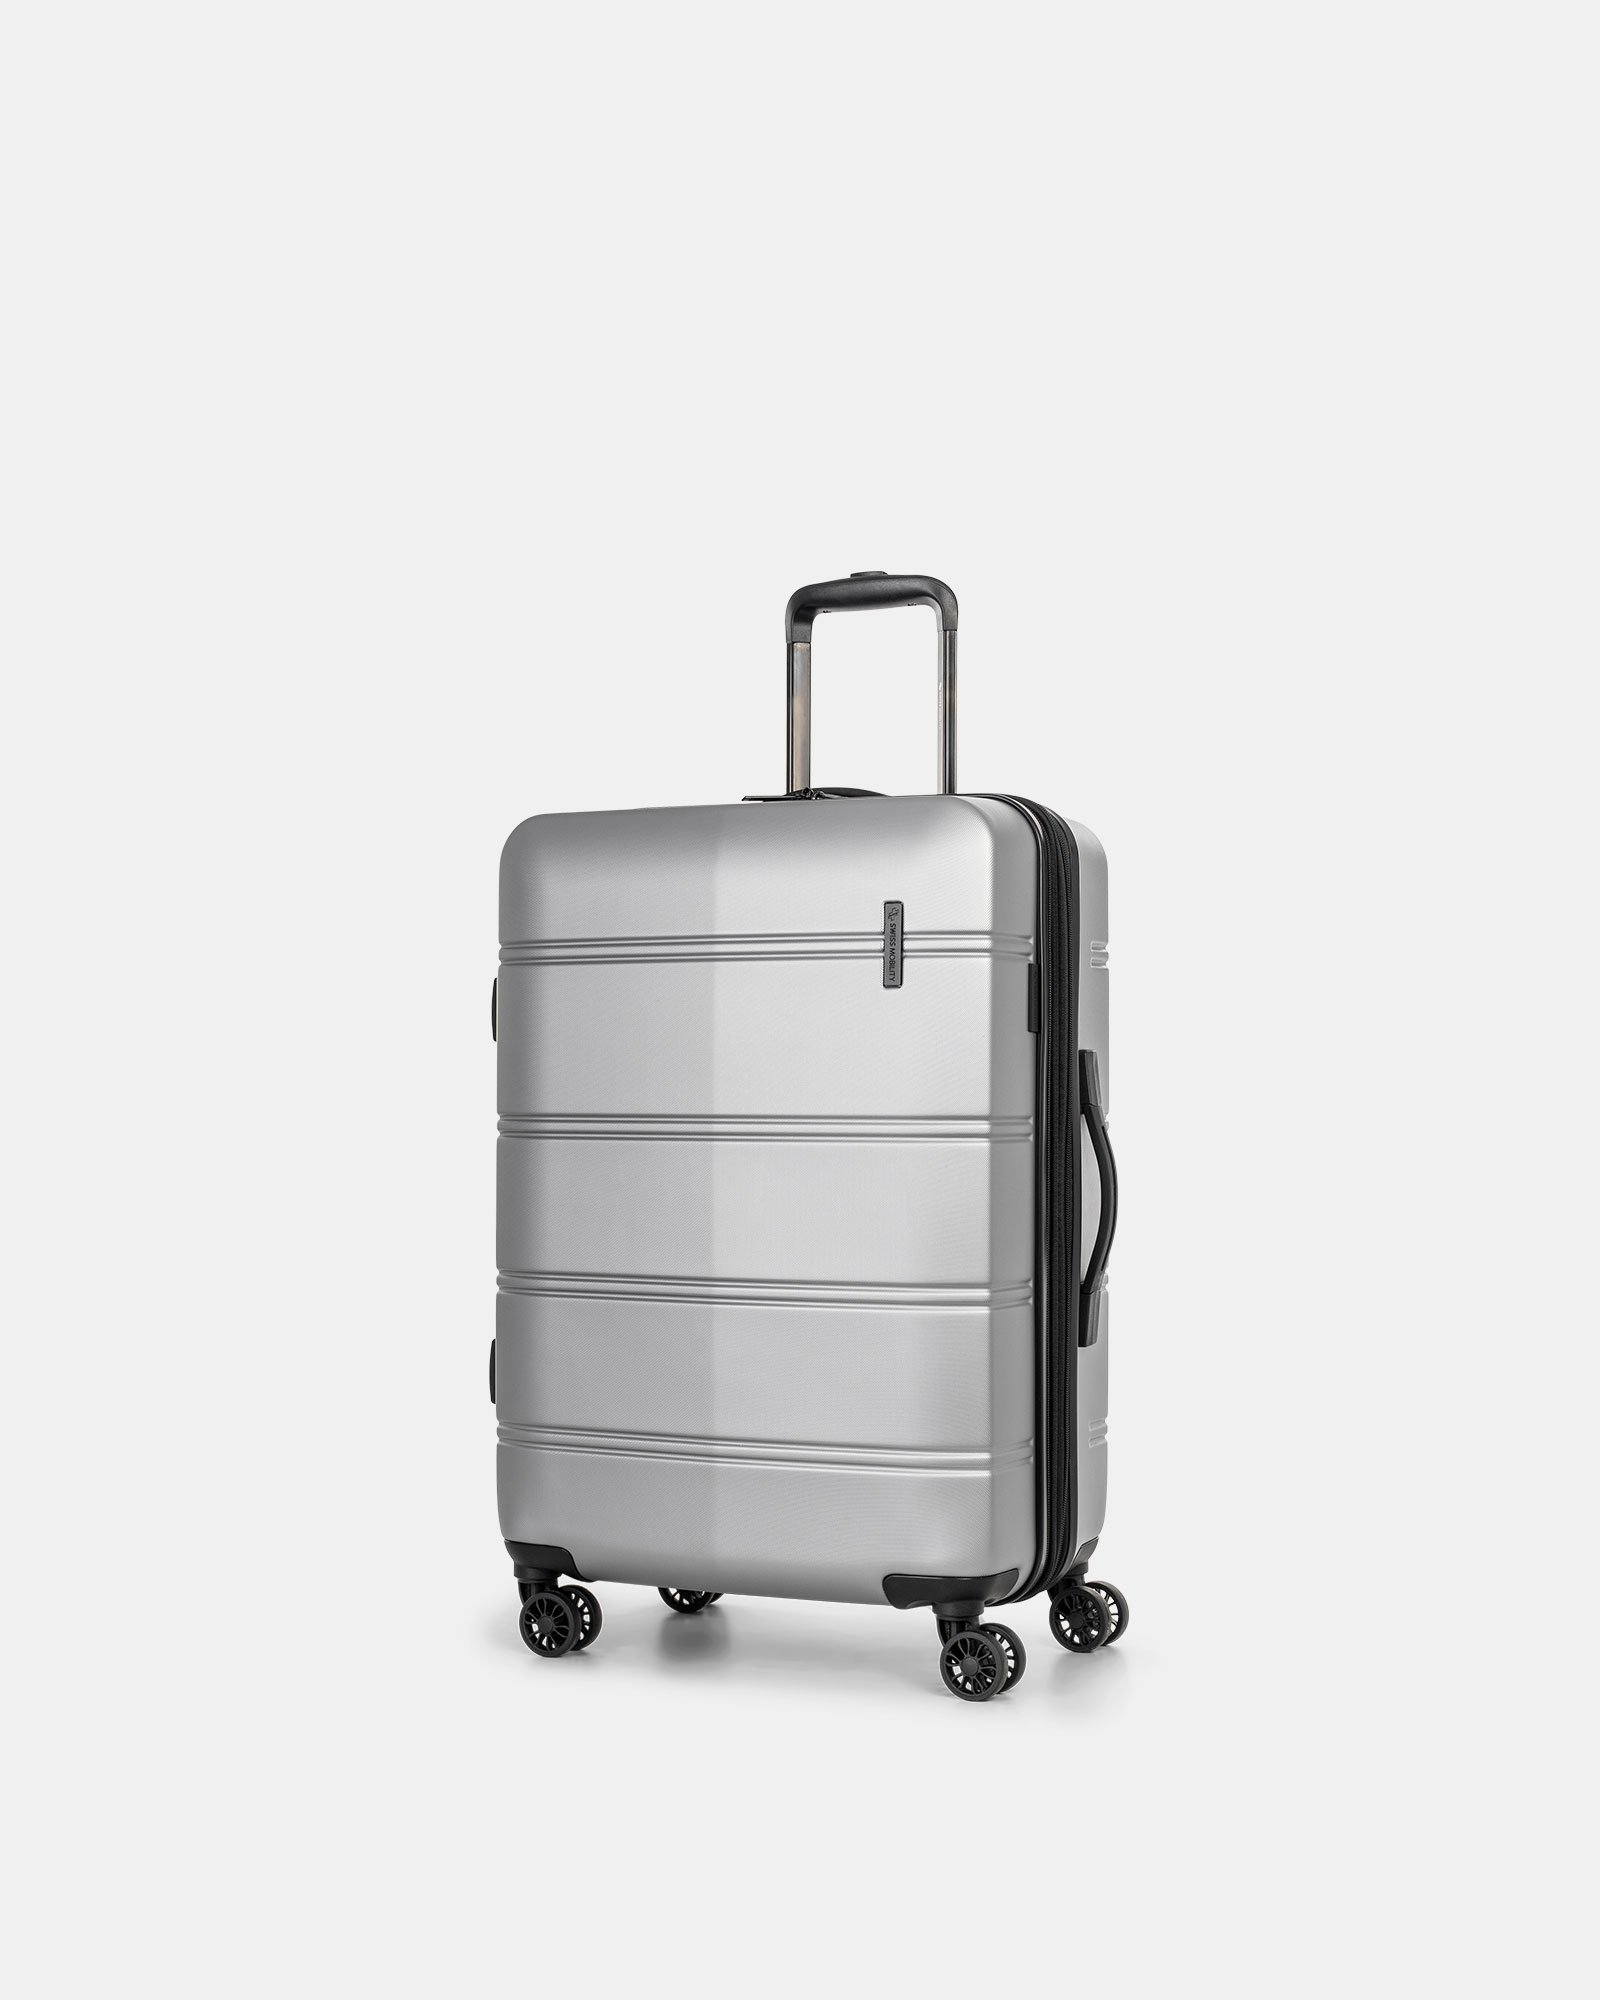 "LAX - 26"" LIGHTWEIGHT HARDSIDE LUGGAGE - SILVER - Swiss Mobility - Zoom"